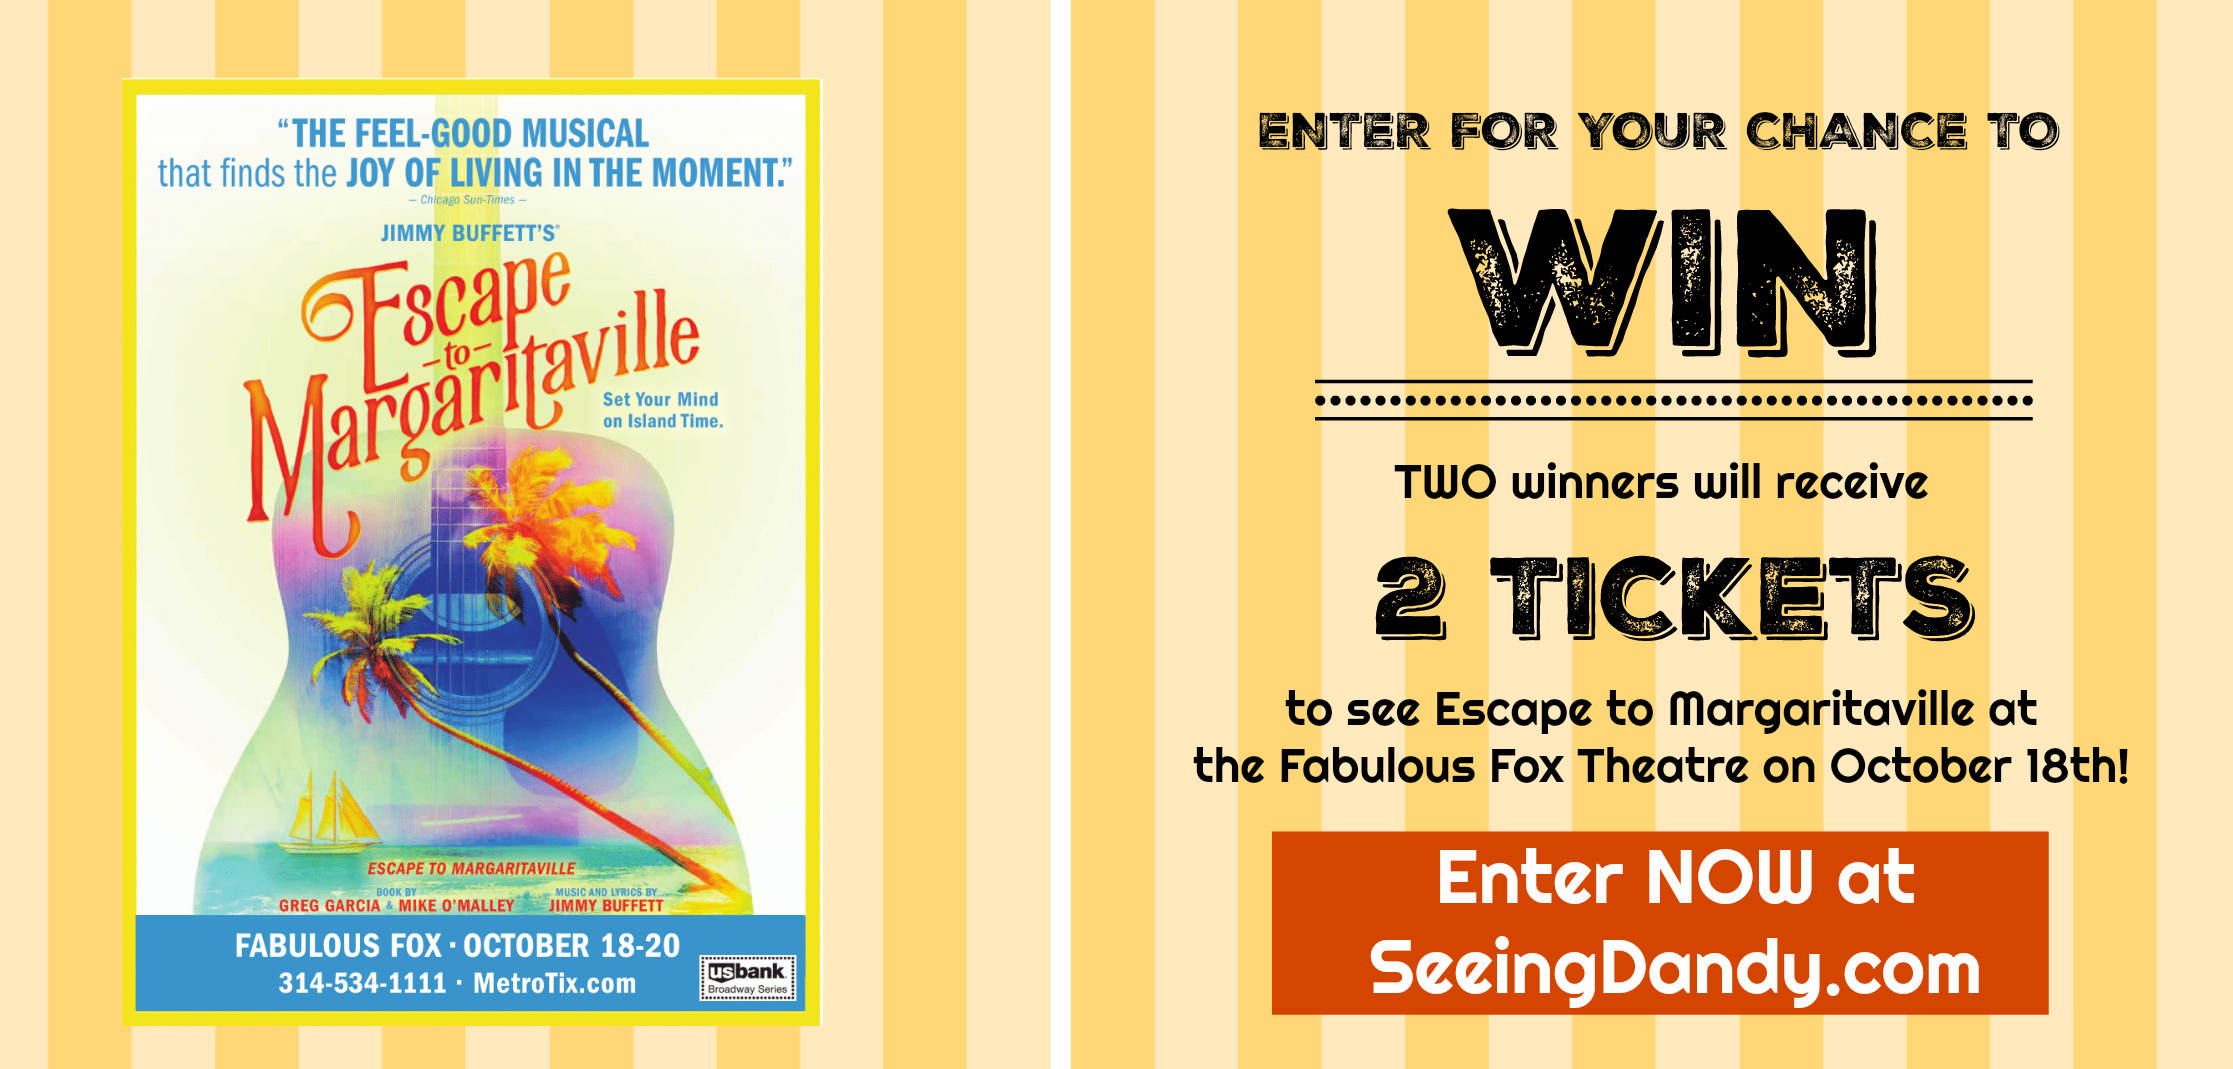 Ticket giveaway to the Fox Theatre opening night of Escape to Margaritaville.